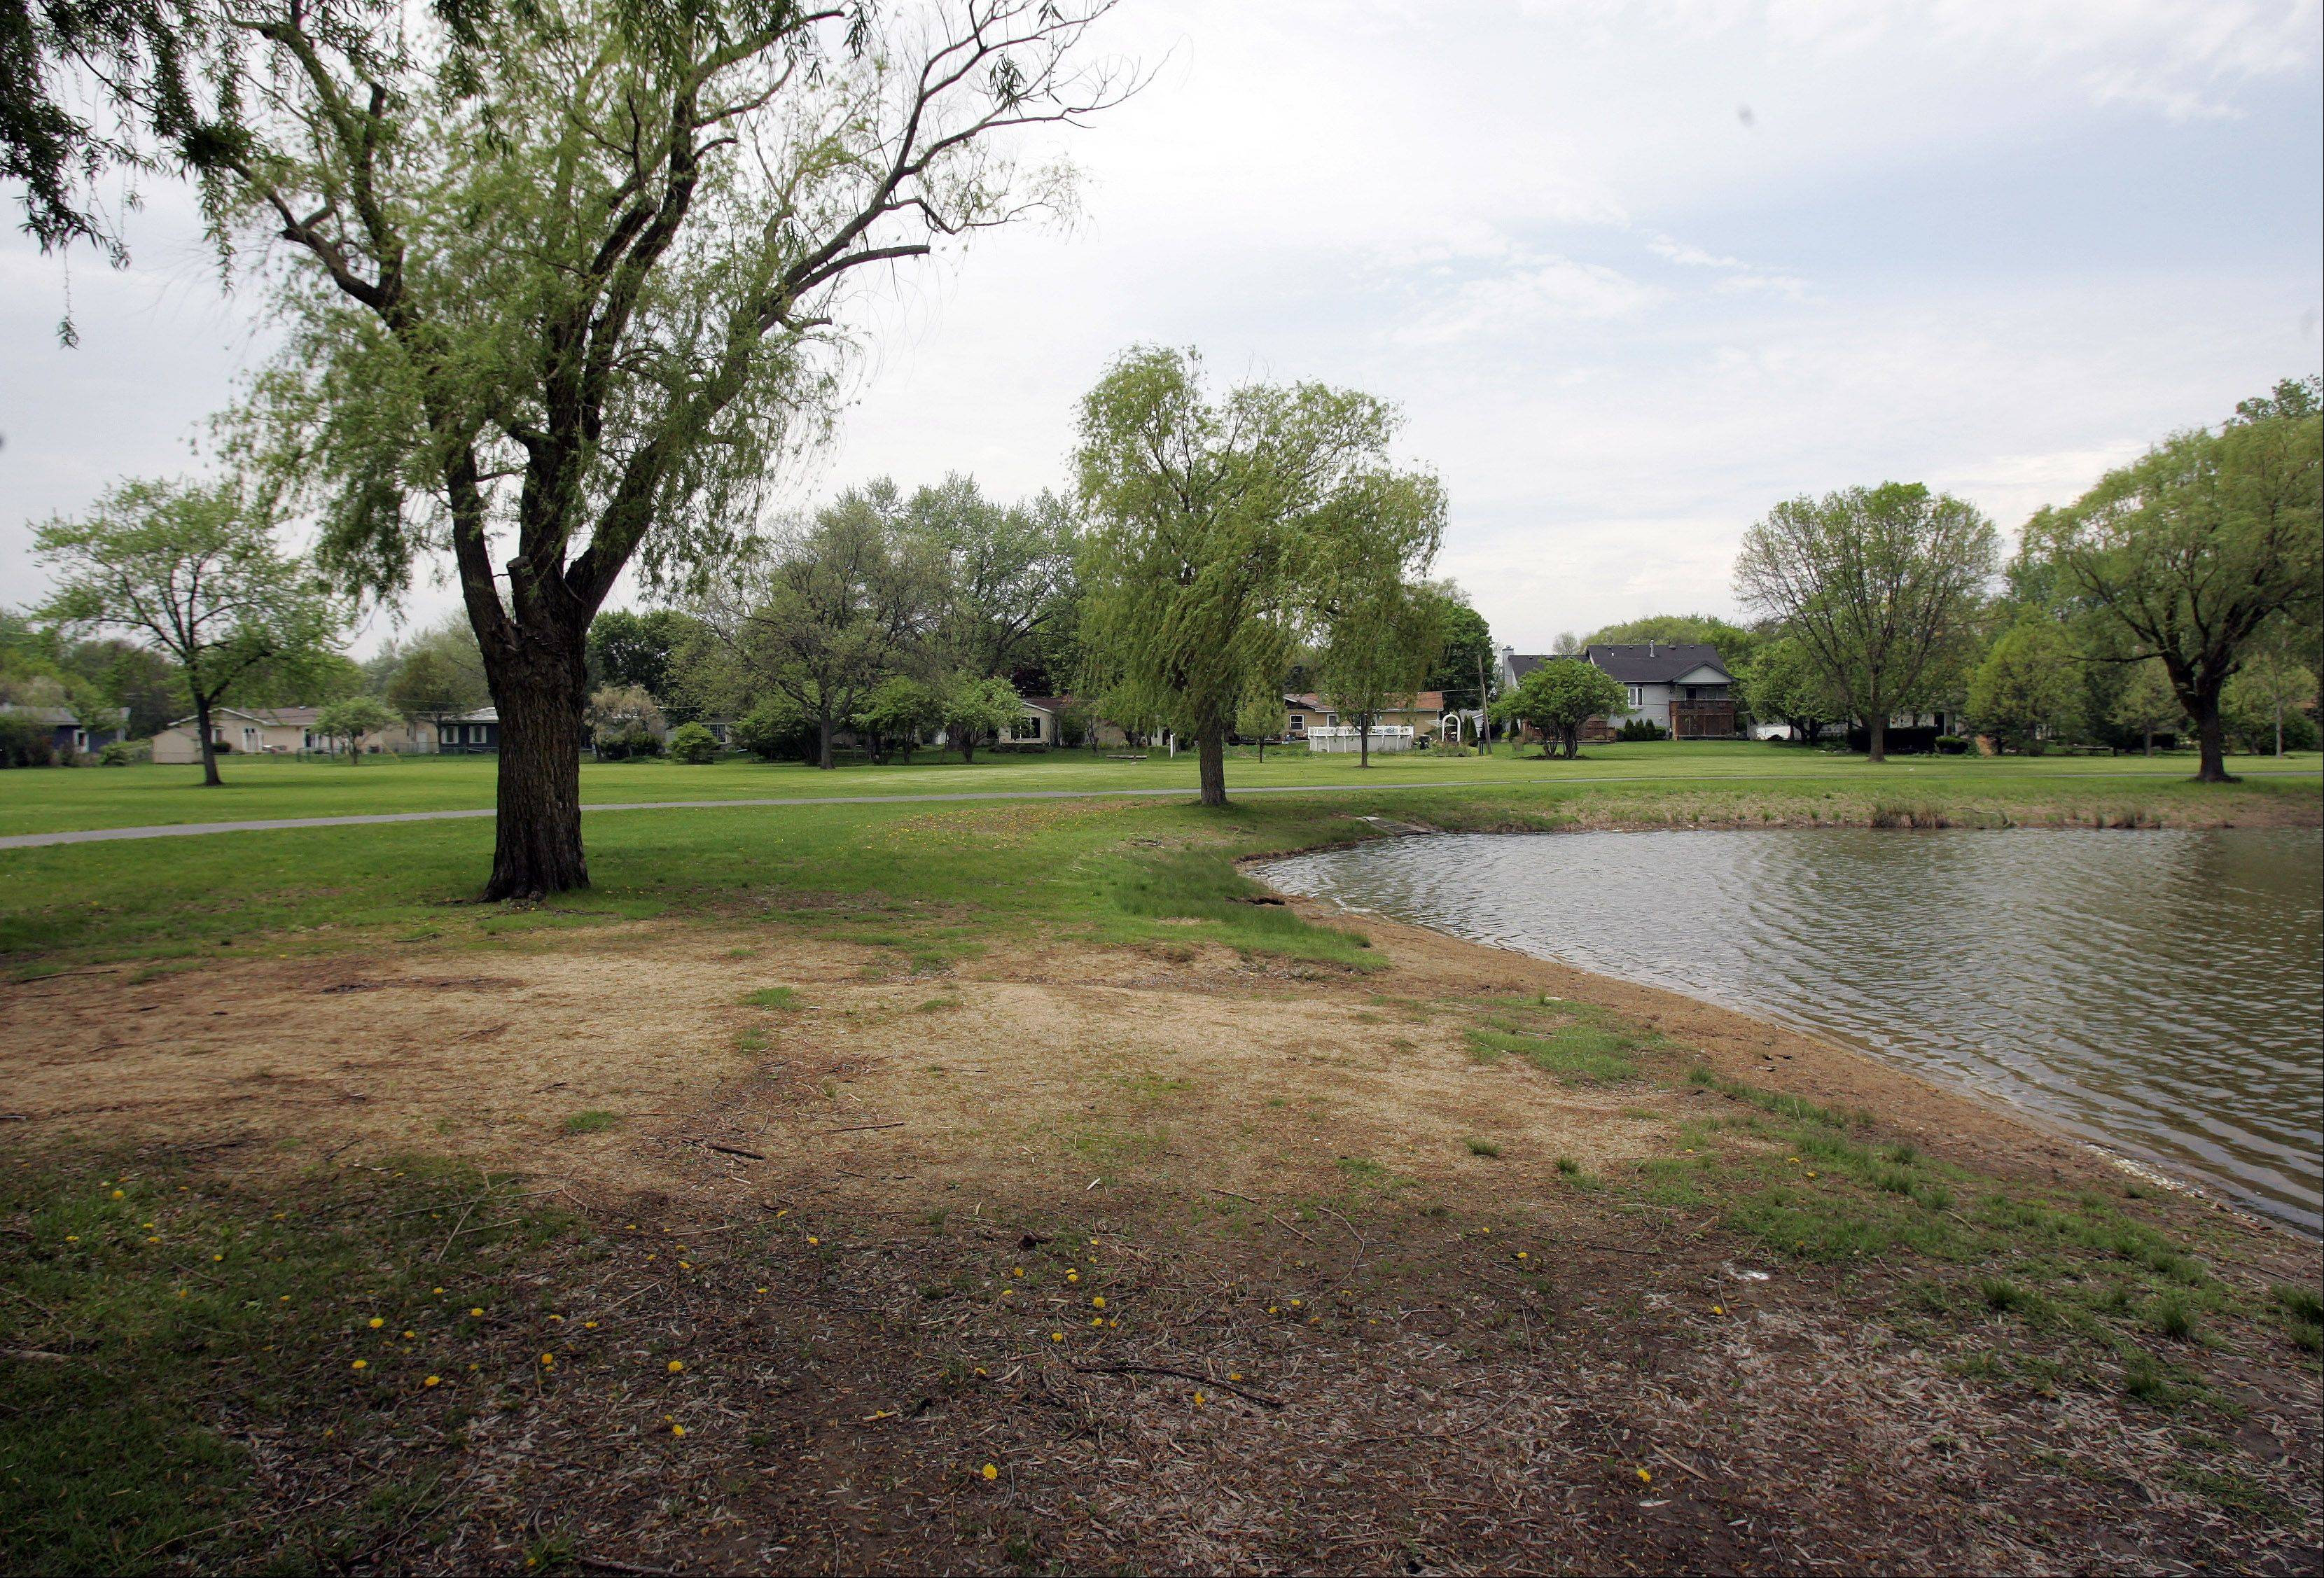 Installation of water reservoirs and a pumping station at Armstrong Park in Carol Stream took another step forward Monday after village trustees approved an intergovernmental agreement with the county and park district.